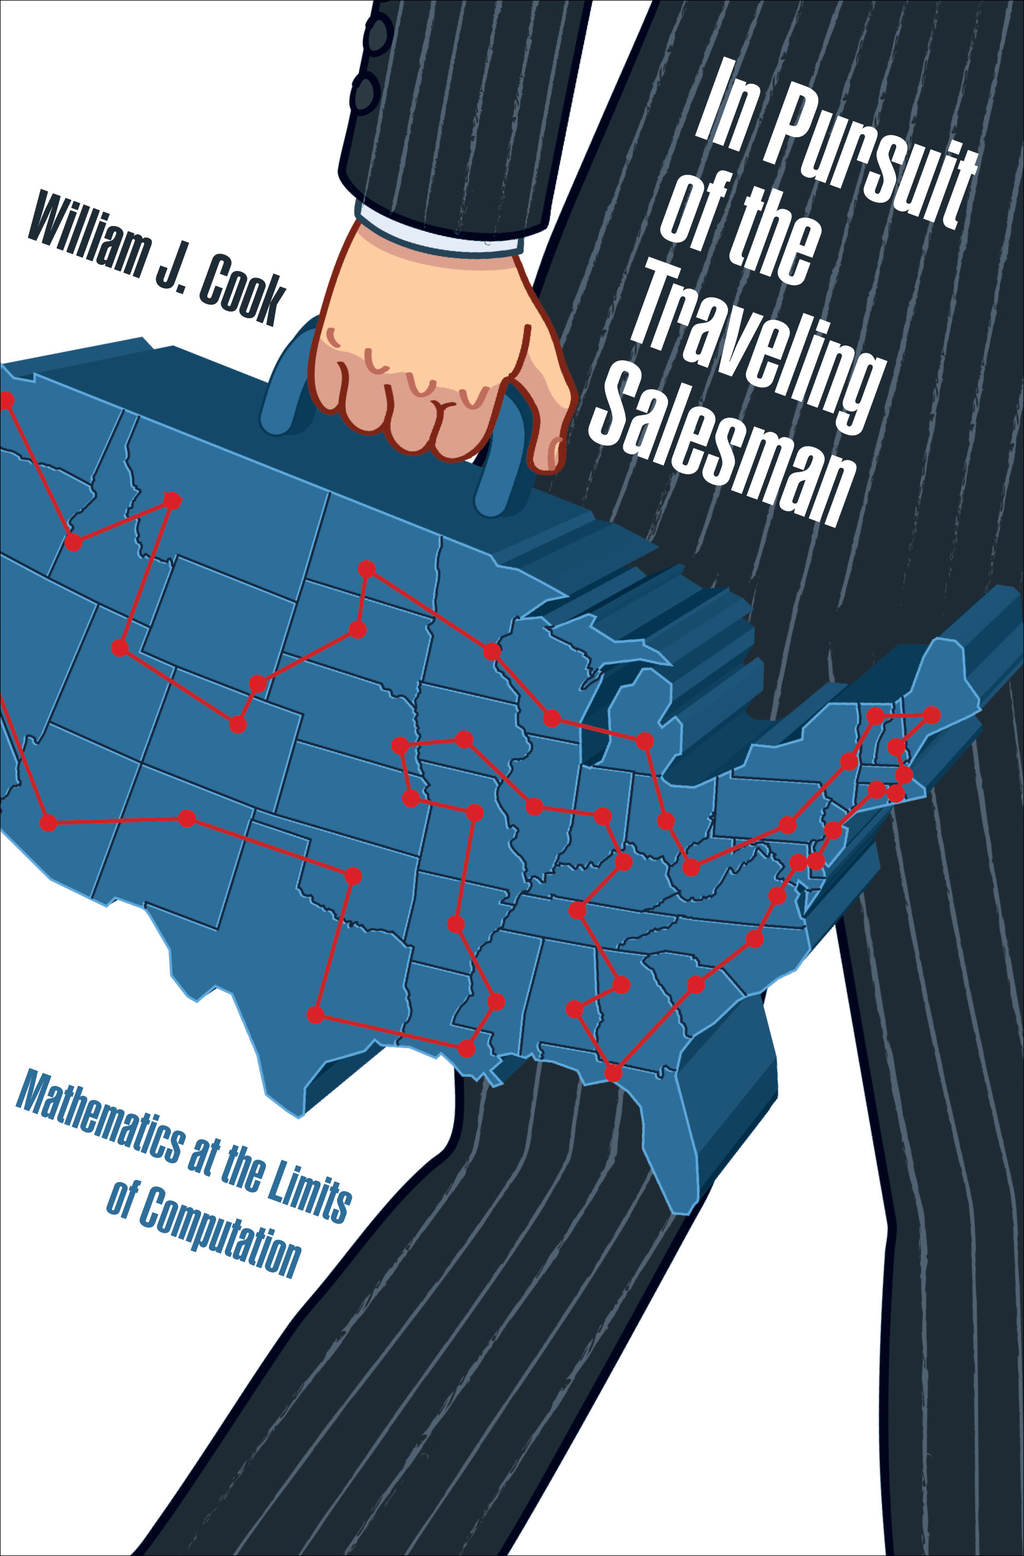 In Pursuit of the Traveling Salesman Mathematics at the Limits of Computation